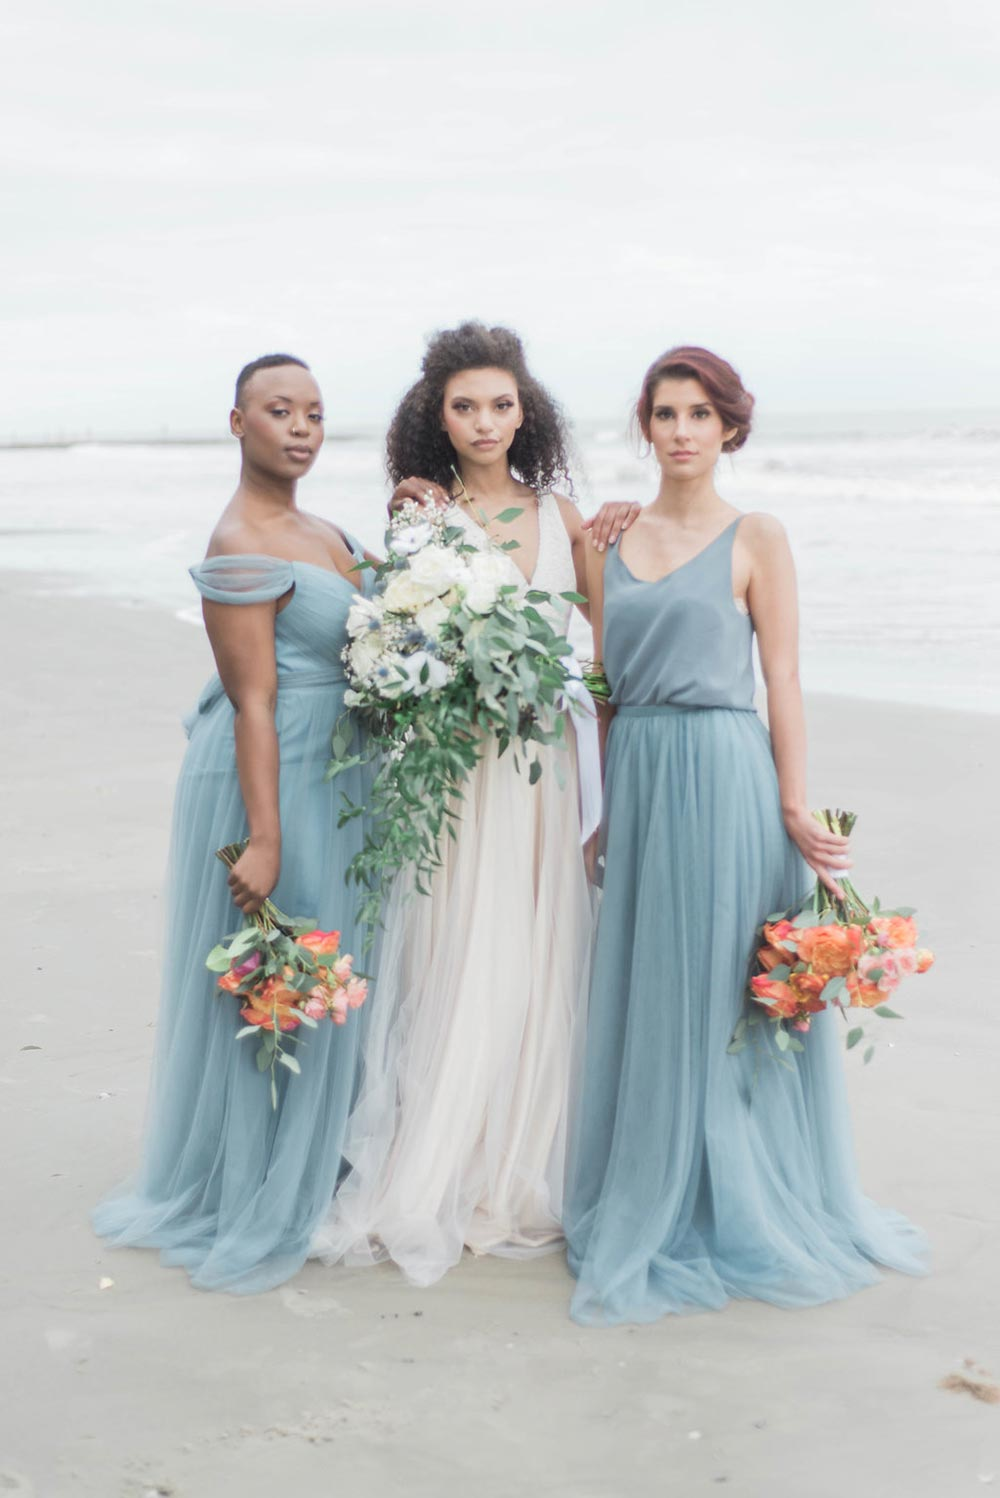 Exceptional Dusty Blue Maxi Bridesmaid Dresses Coastal Wedding